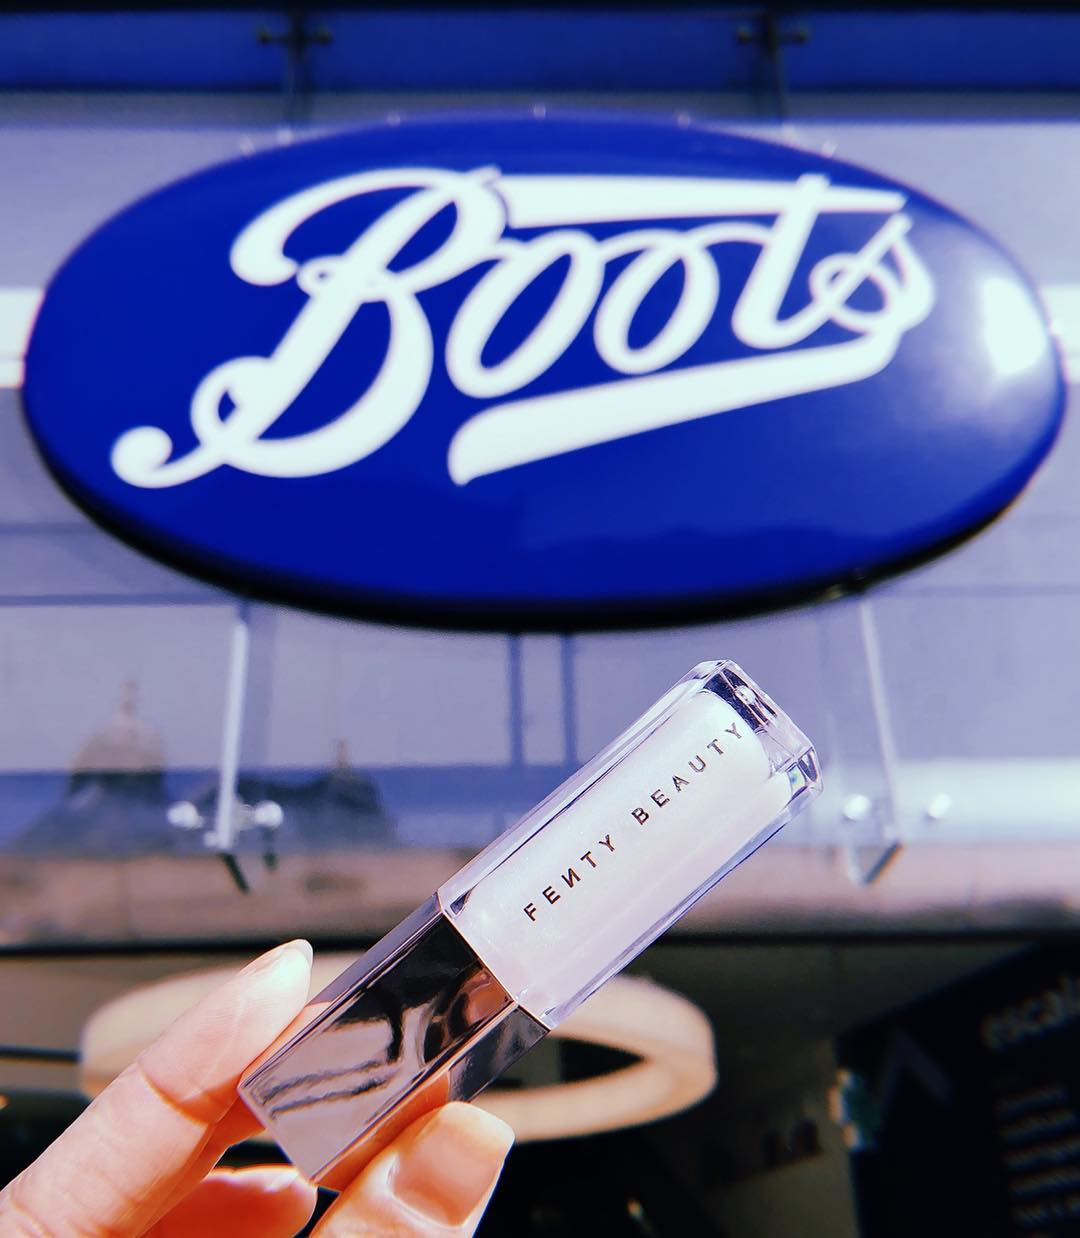 Rihanna is launching Fenty Beauty at Boots UK in Next Week 1